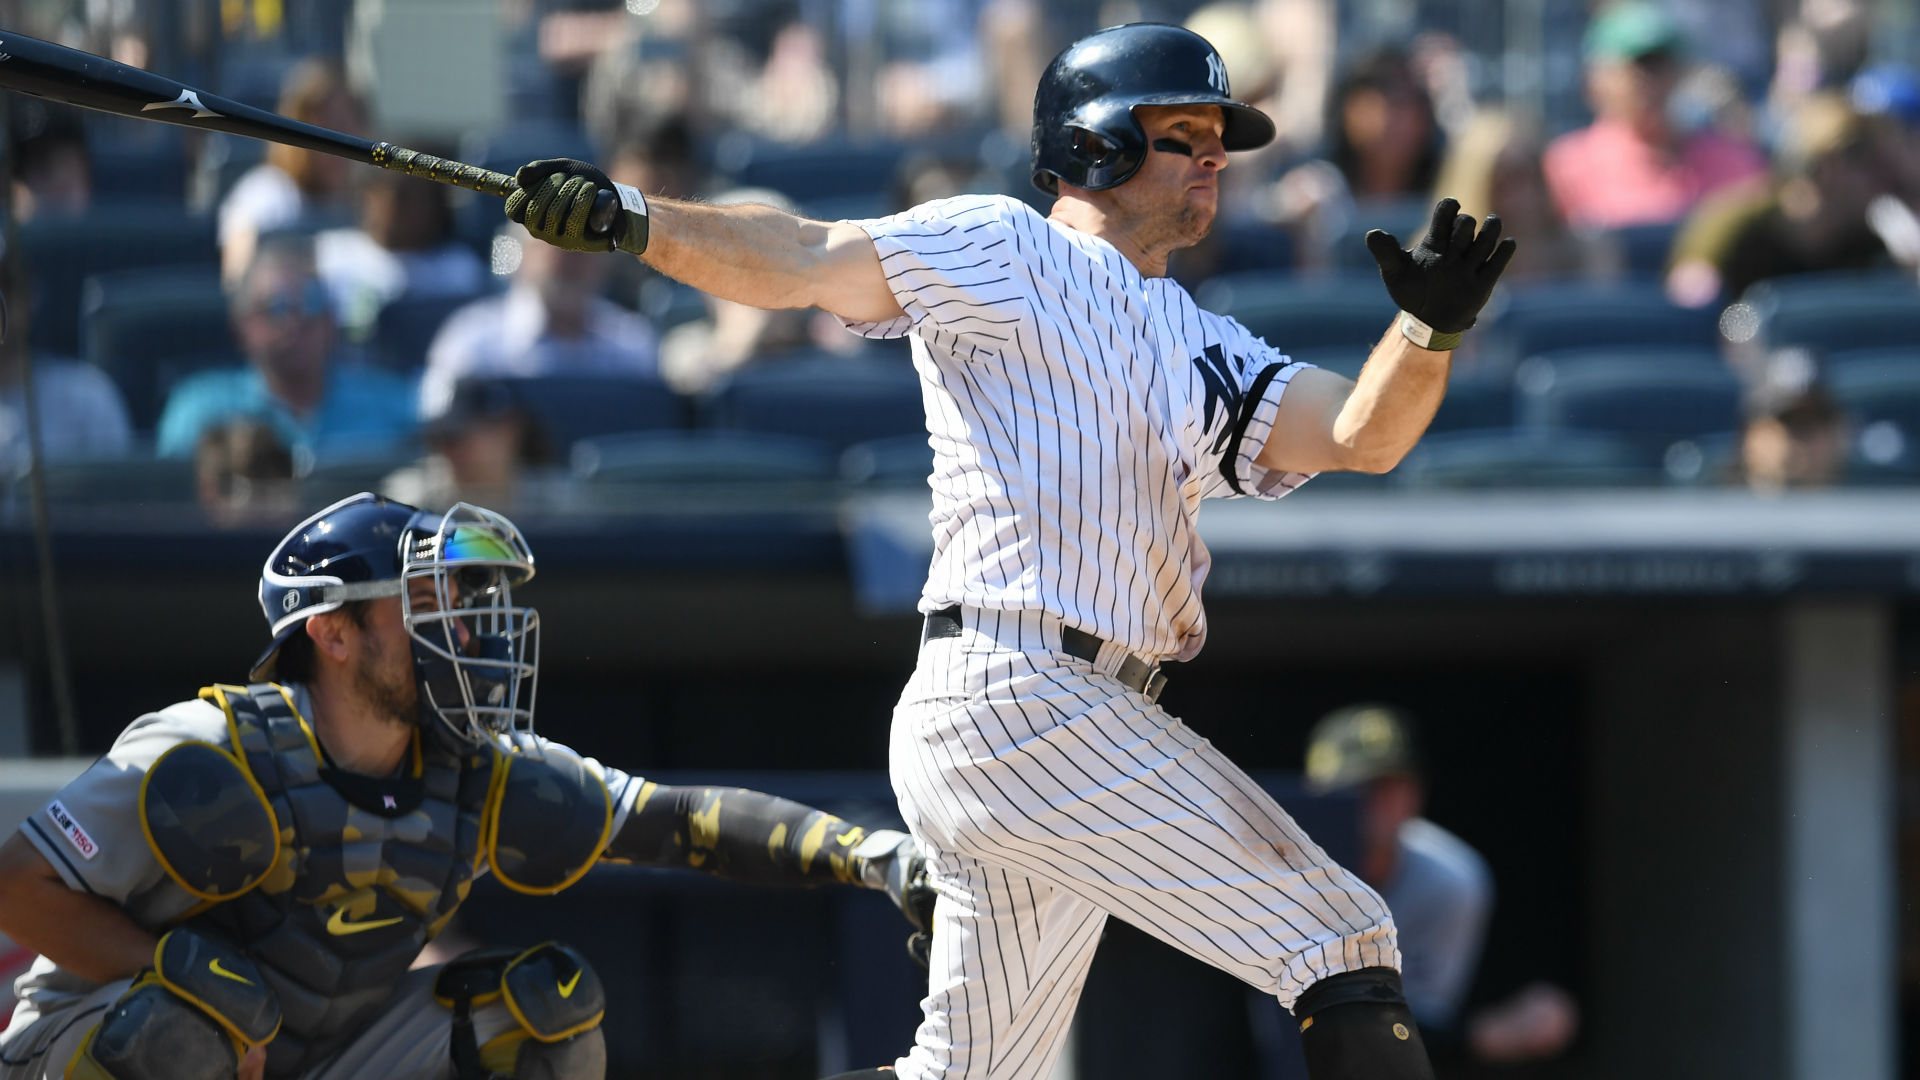 Gardner finished with three RBIs and two runs scored in the Yankees' 13-5 win over the Rays.